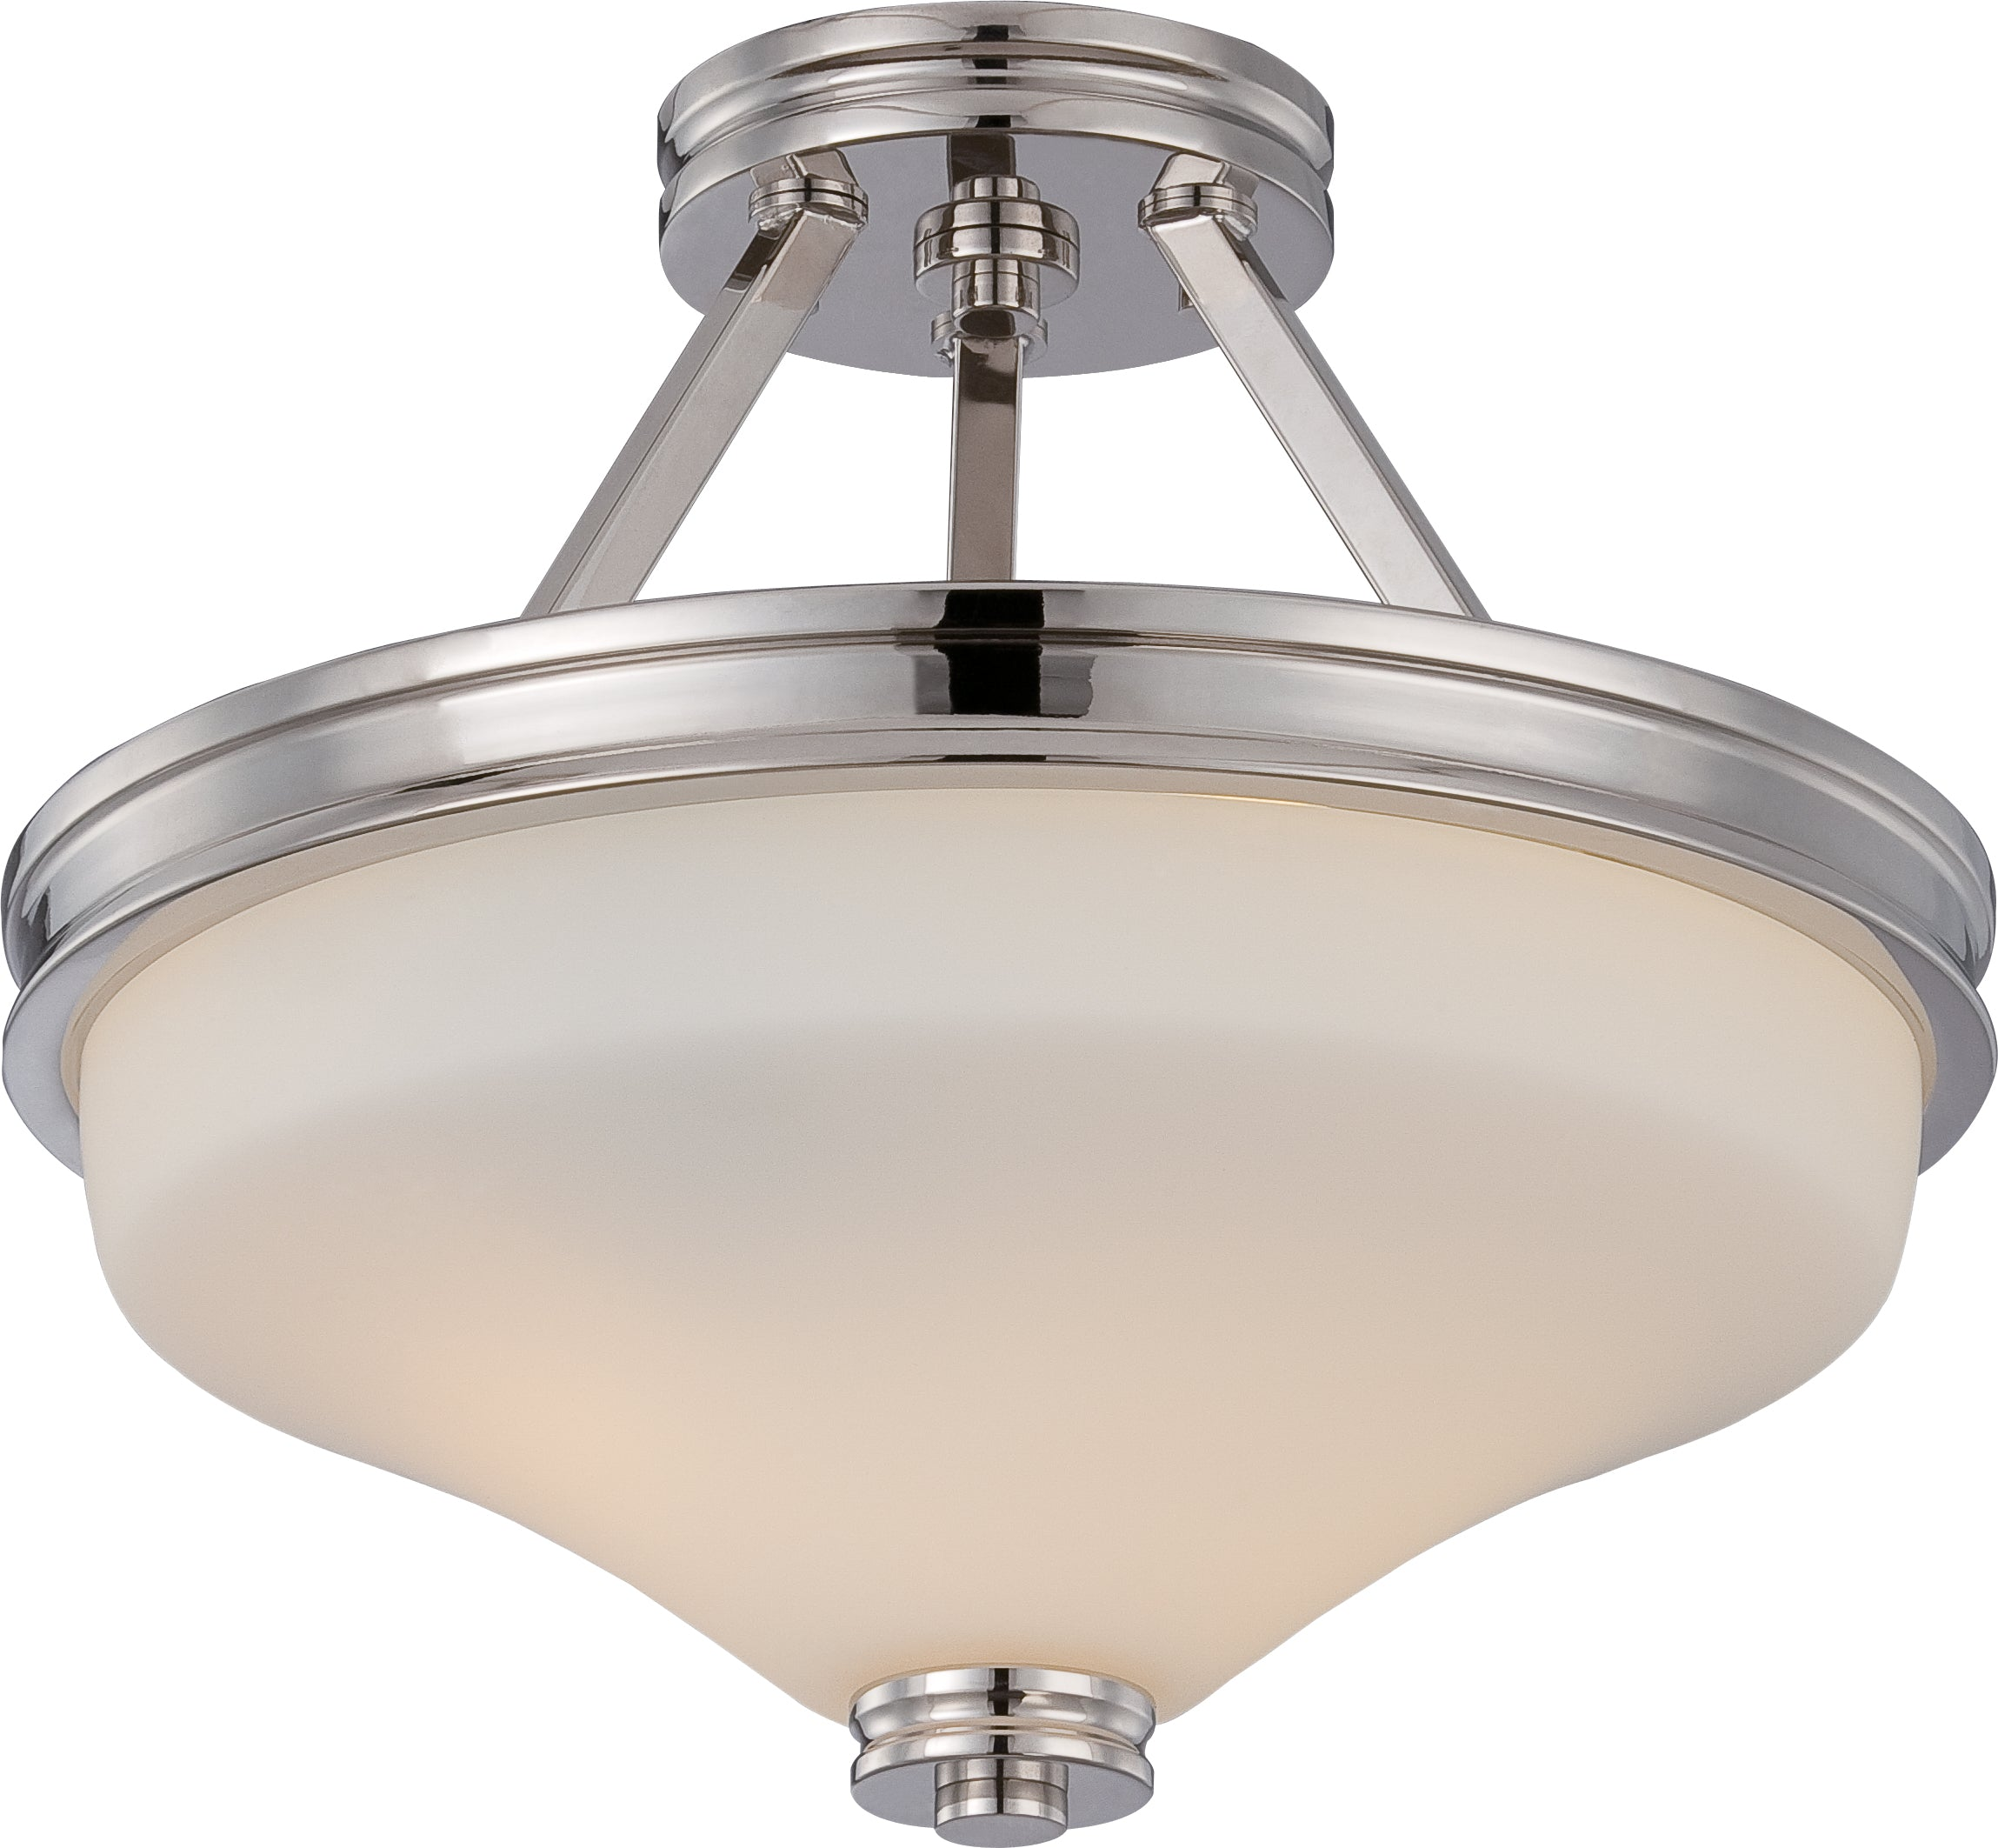 Nuvo Cody 2-Light LED Semi Flush Mounted w/ Satin White Glass in Polished Nickel